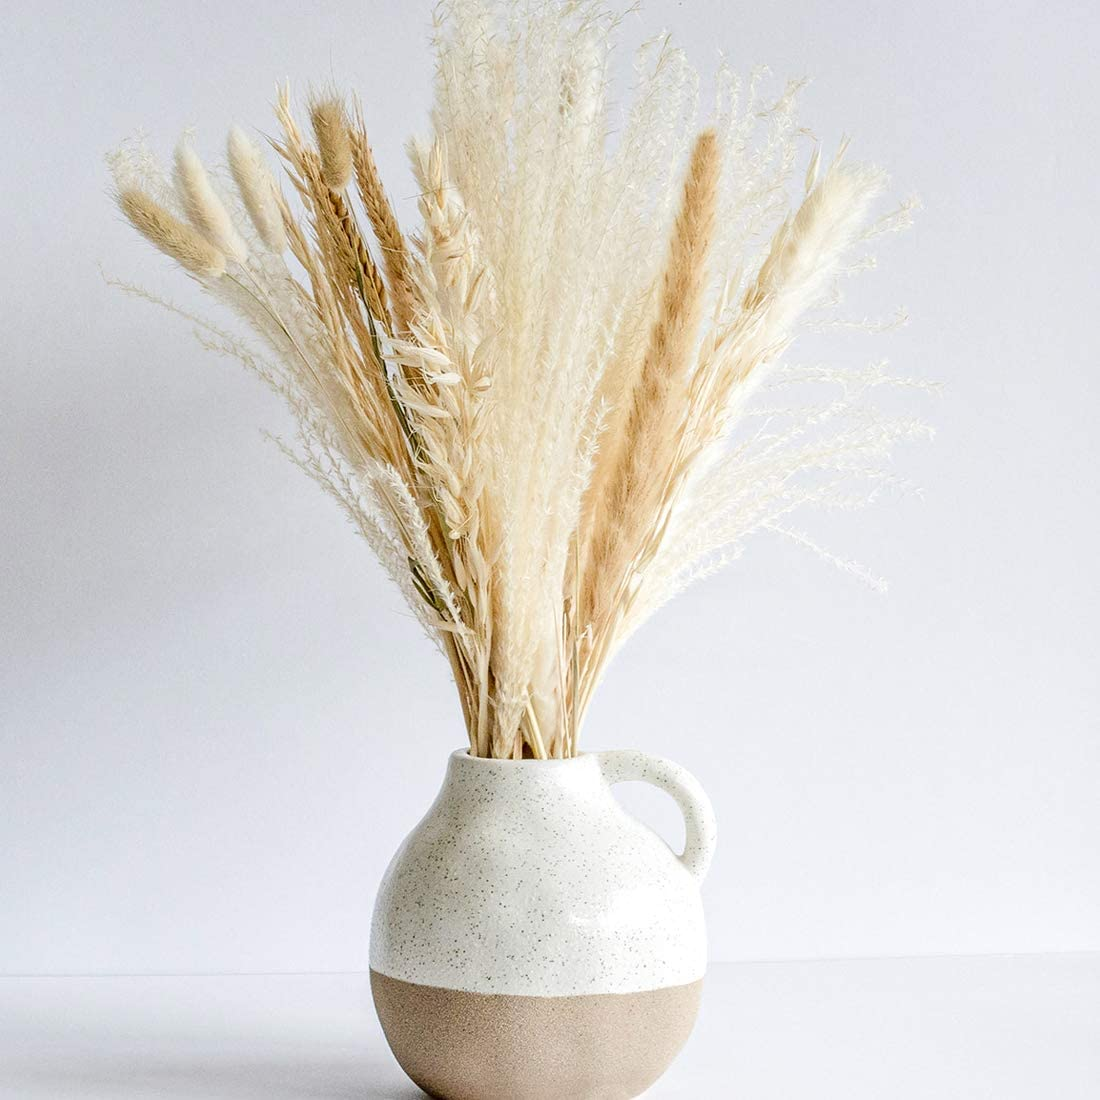 South Pillar - Natural Dried Pampas Grass Bouquet for Home Decor (White and Natural)